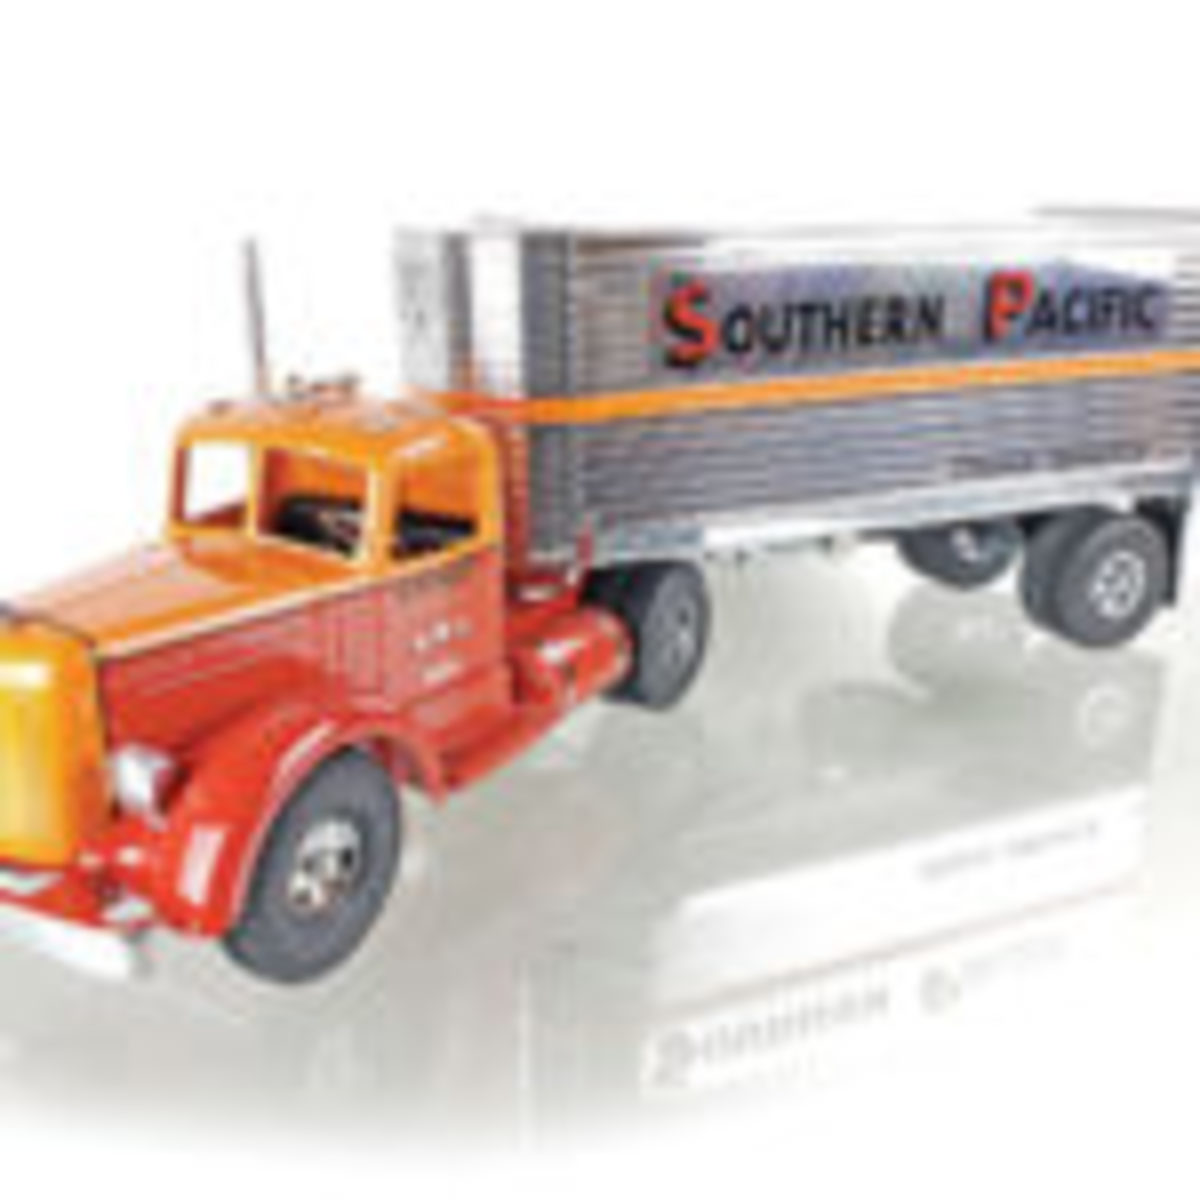 Southern Pacific truck. Photos courtesy of EJ's Auction & Appraisals